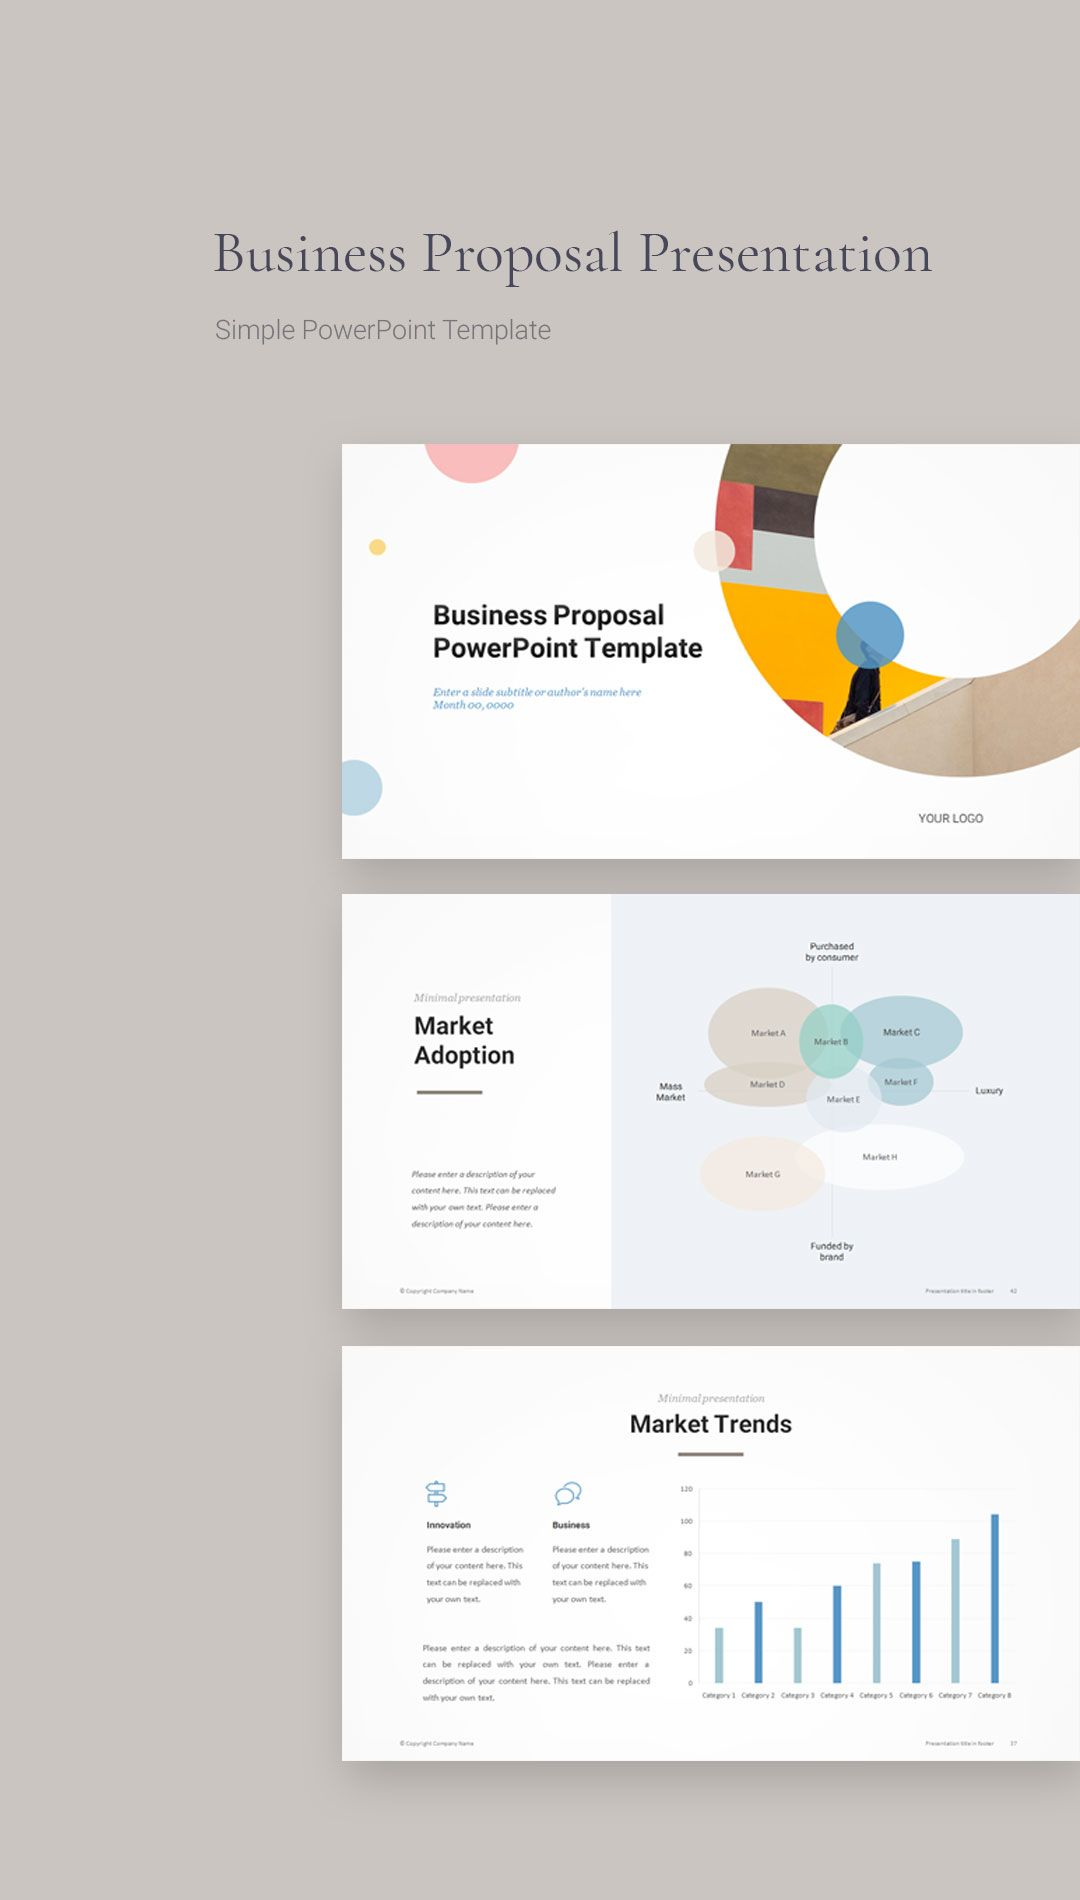 Business Proposal PowerPoint Template in 2020 Business